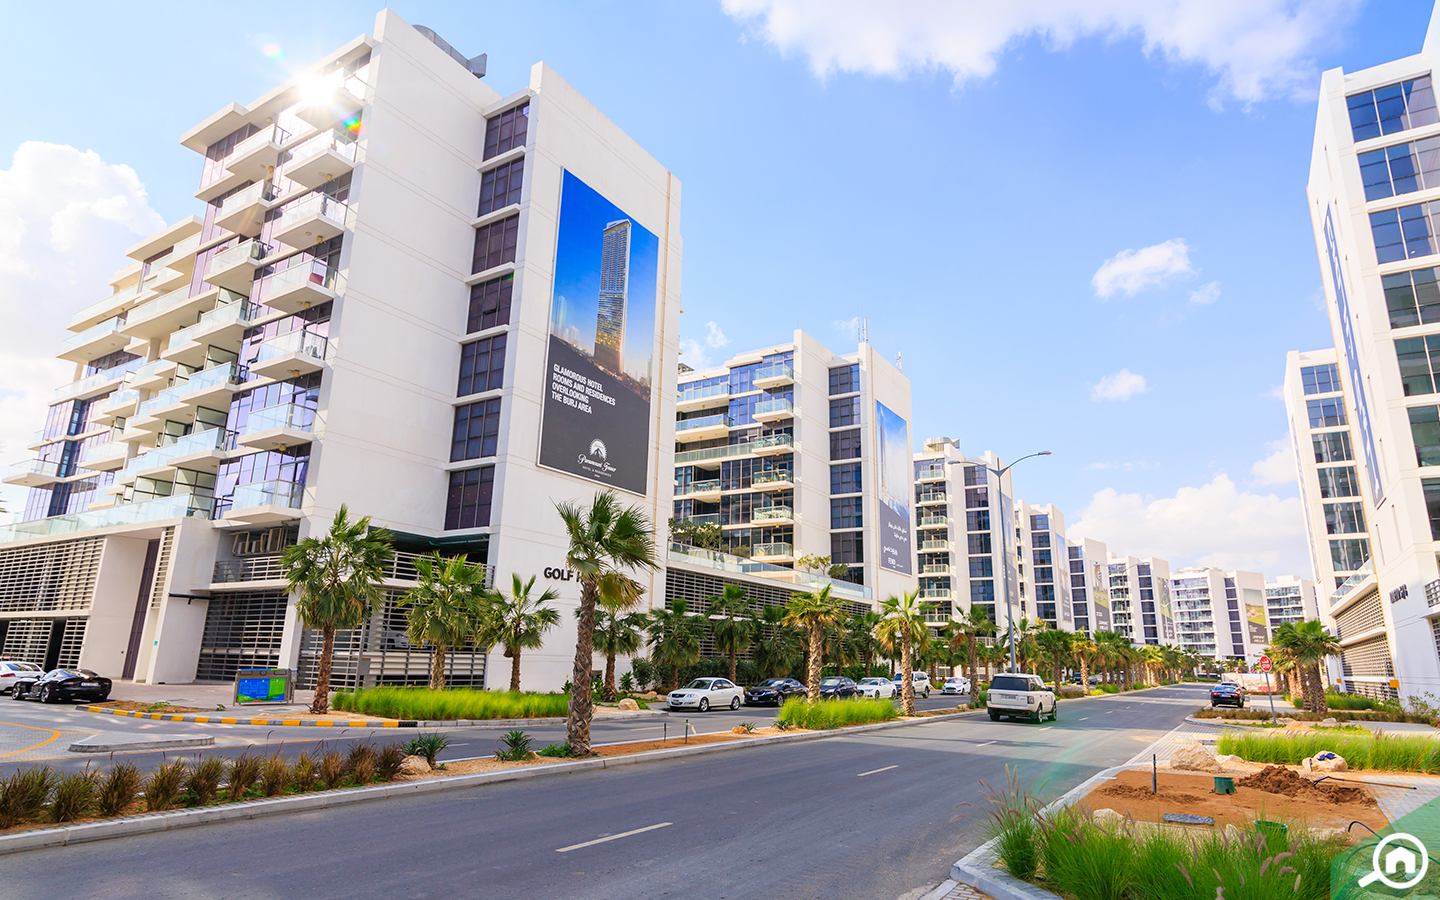 Damac Hills (Akoya by DAMAC) community